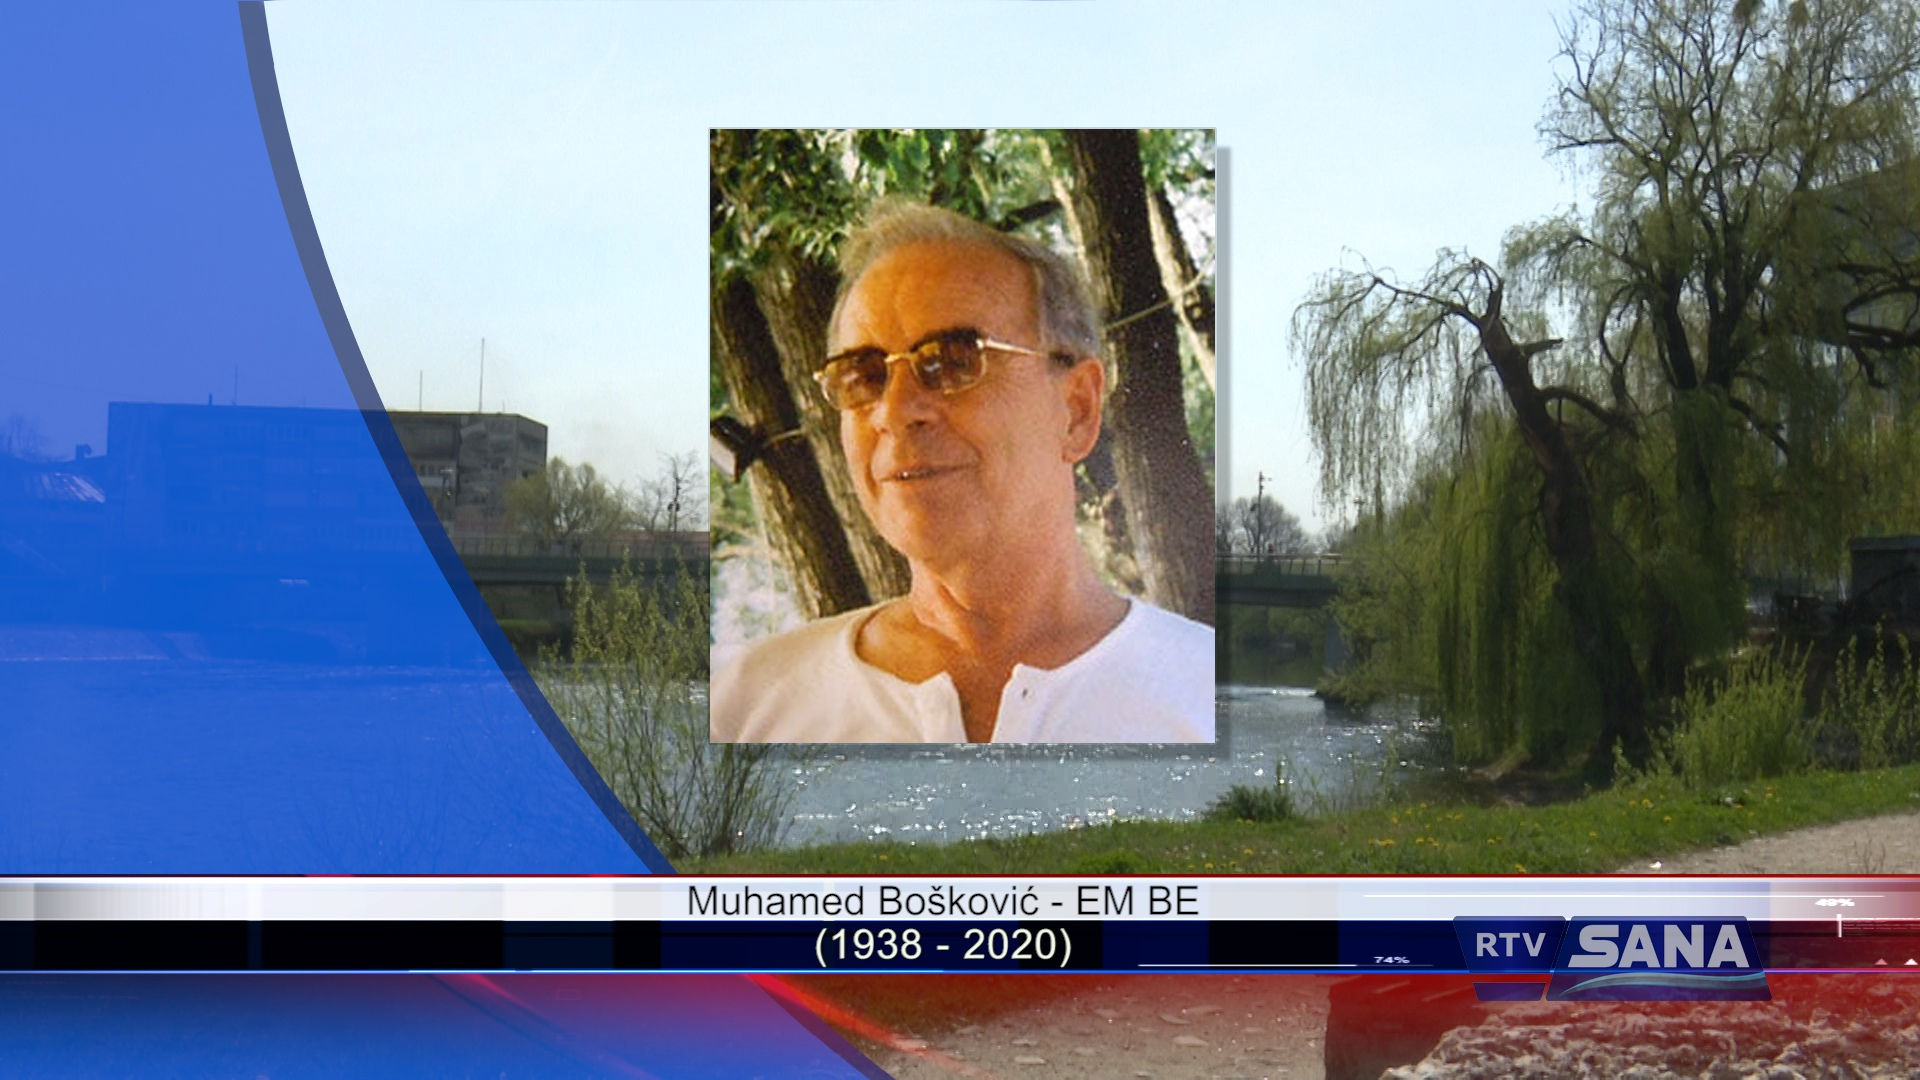 IN MEMORIAM: MUHAMED BOŠKOVIĆ – MB